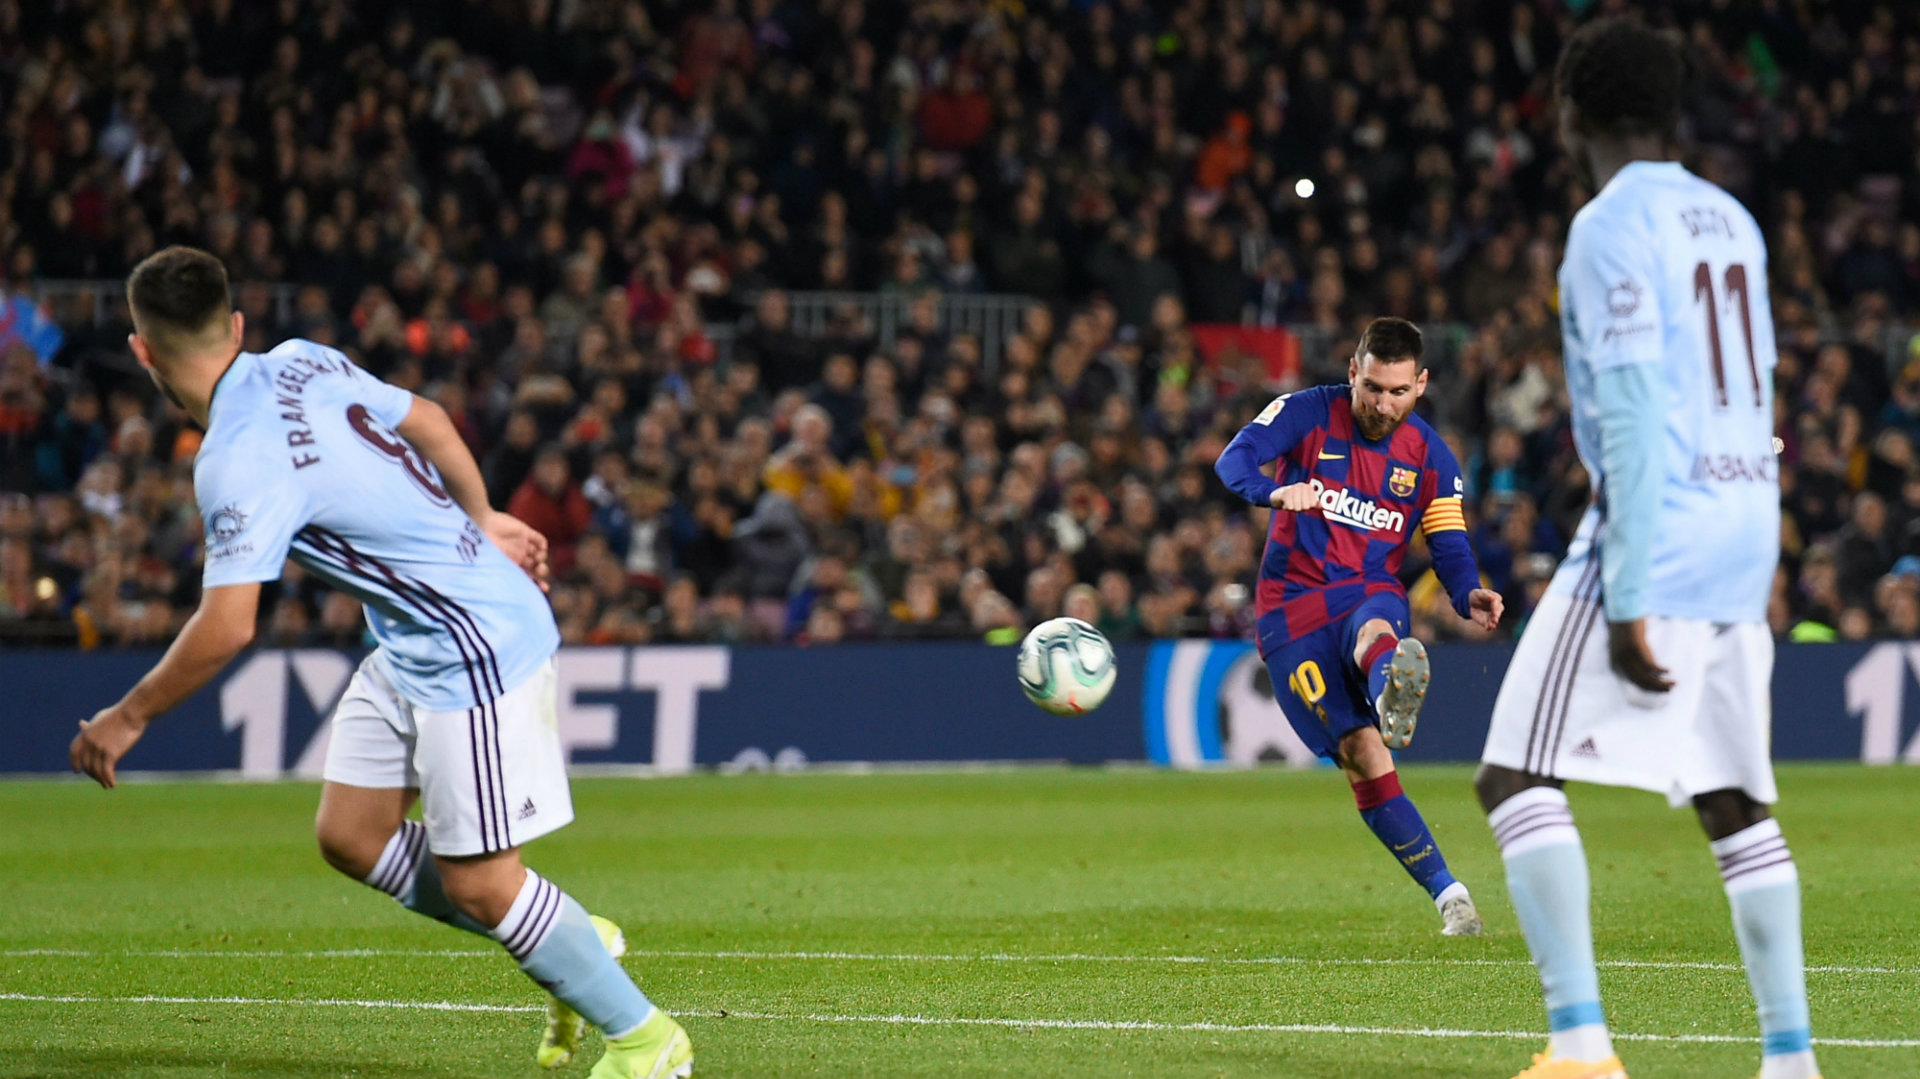 Messi The Set Piece King As Barcelona Again Rely On